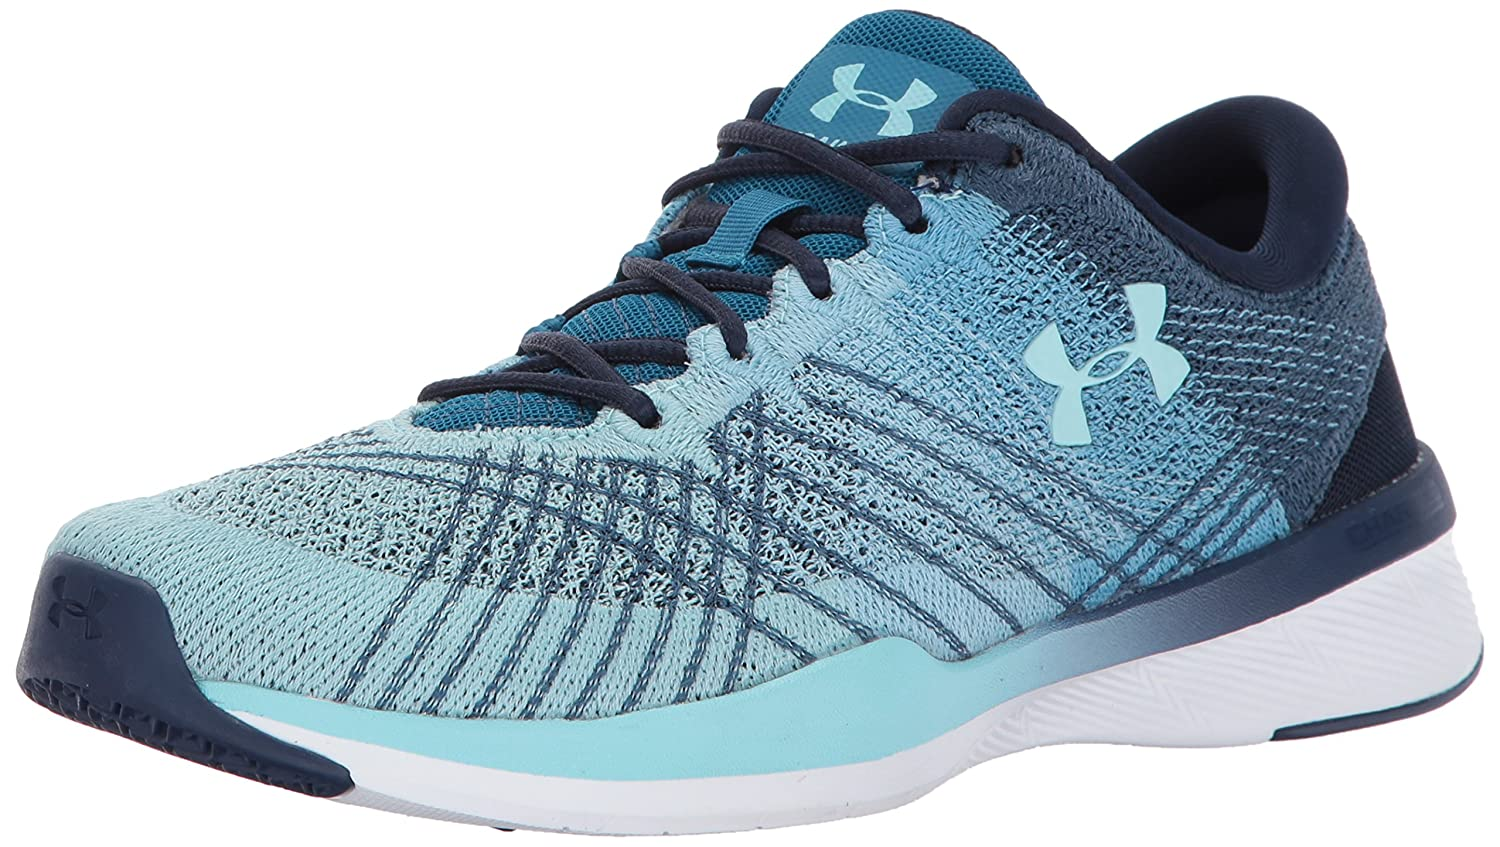 Under Armour Shoe Women's Threadborne Push Cross-Trainer Shoe Armour B01N5FJJ4P 7.5 M US|Midnight Navy (410)/Bayou Blue 265b96